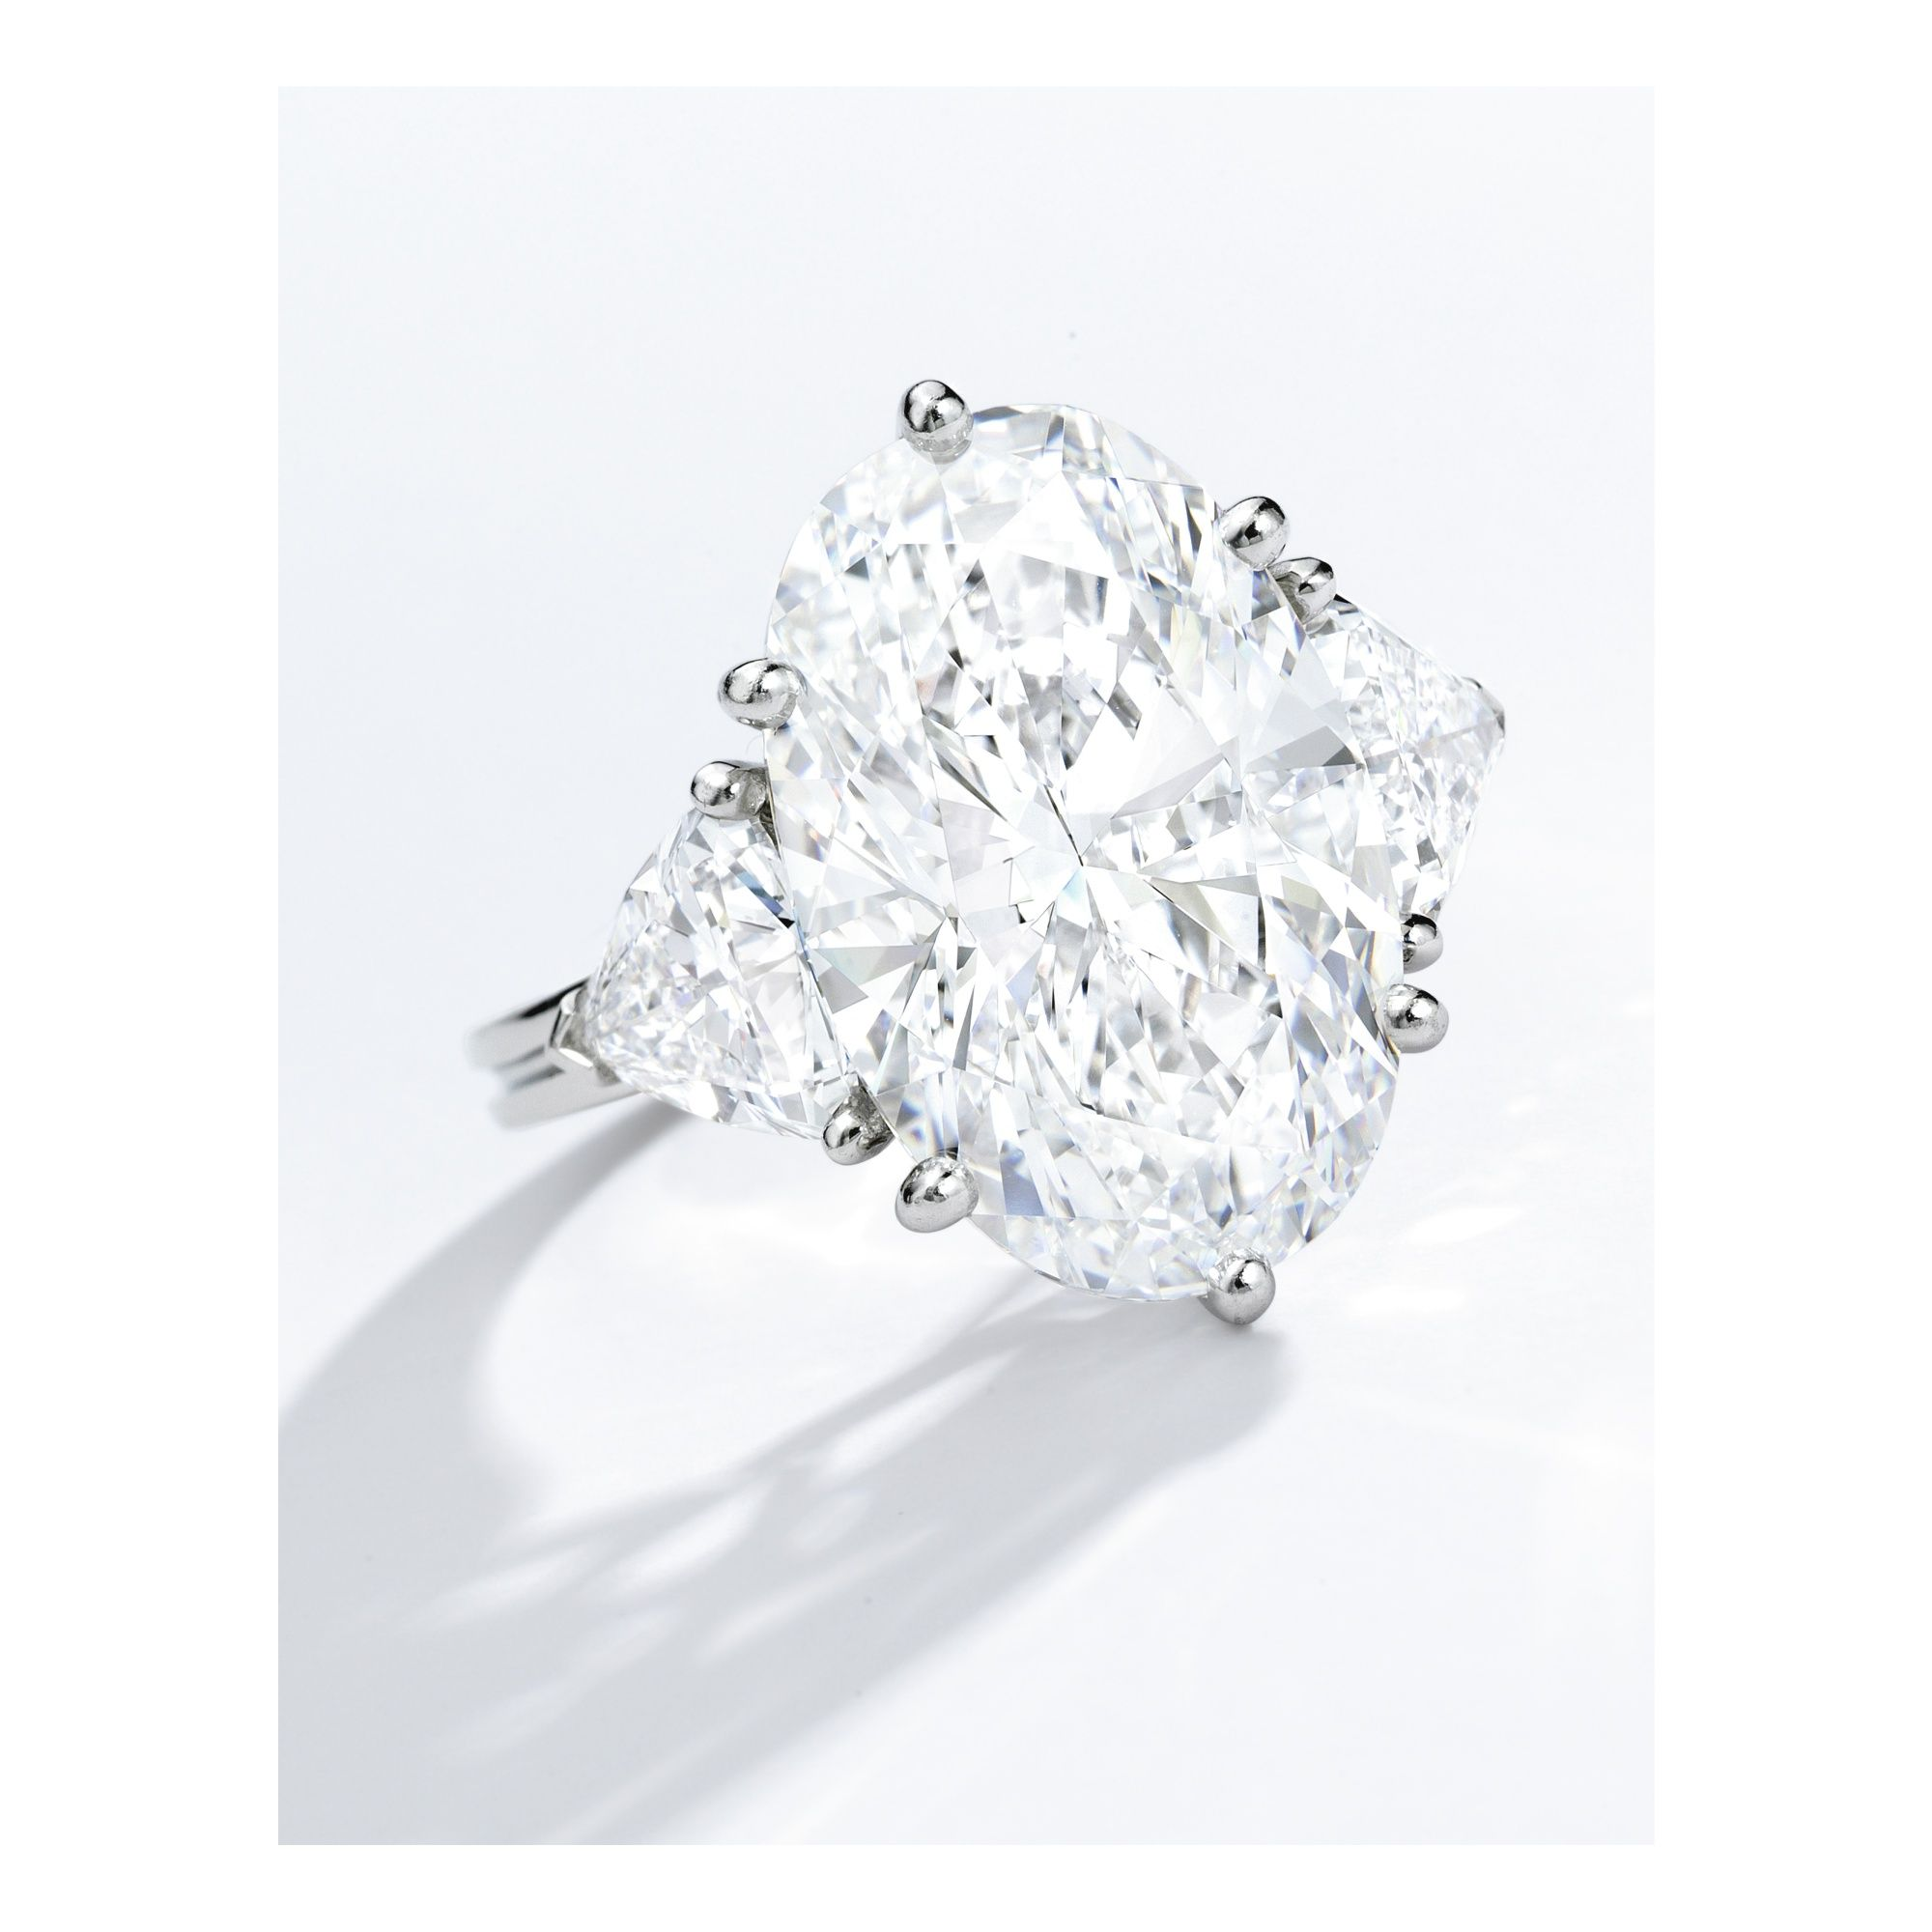 diamond shaped neu lorraine a ring hand classic plus oval carat schwartz of